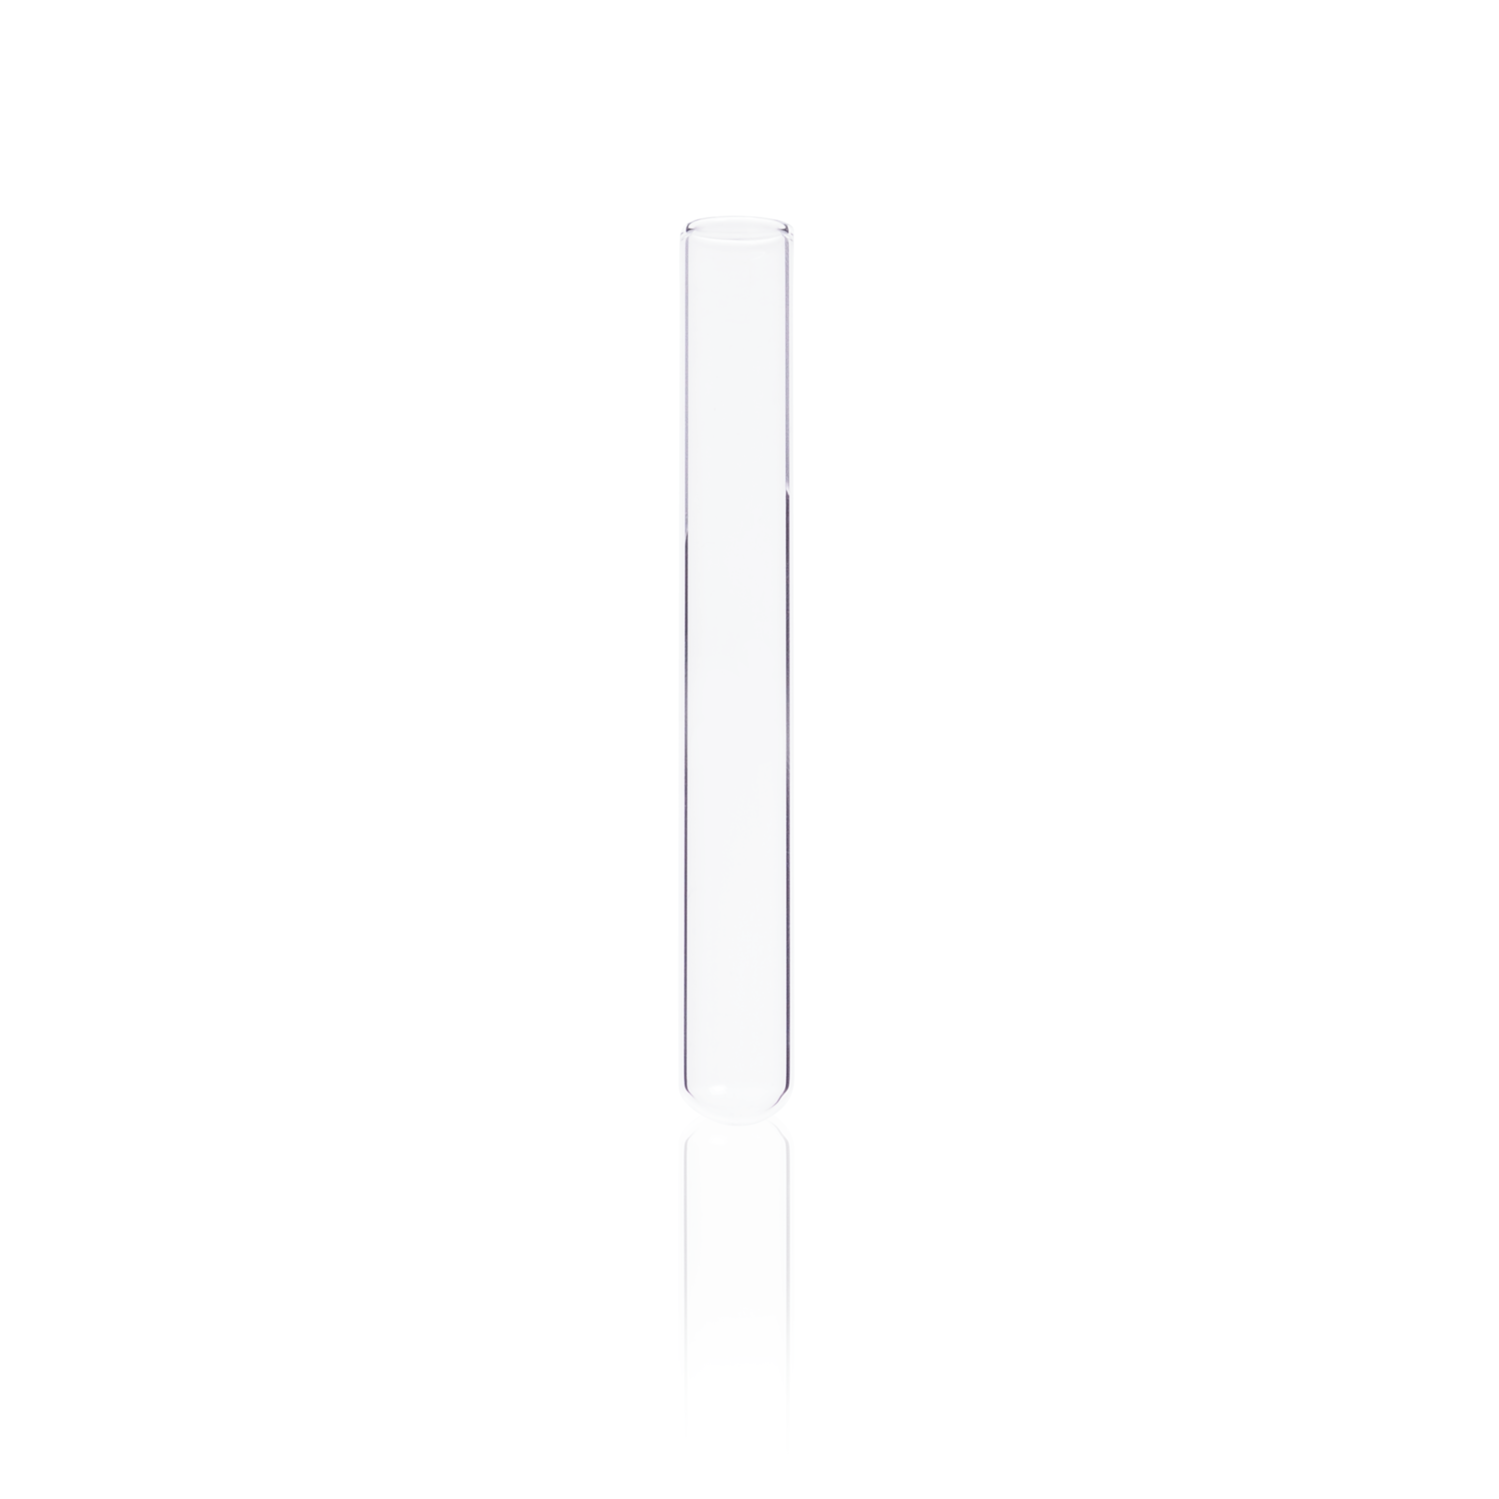 KIMBLE® Reusable Unmarked Culture Tube, 19 x 150 mm, 30 mL